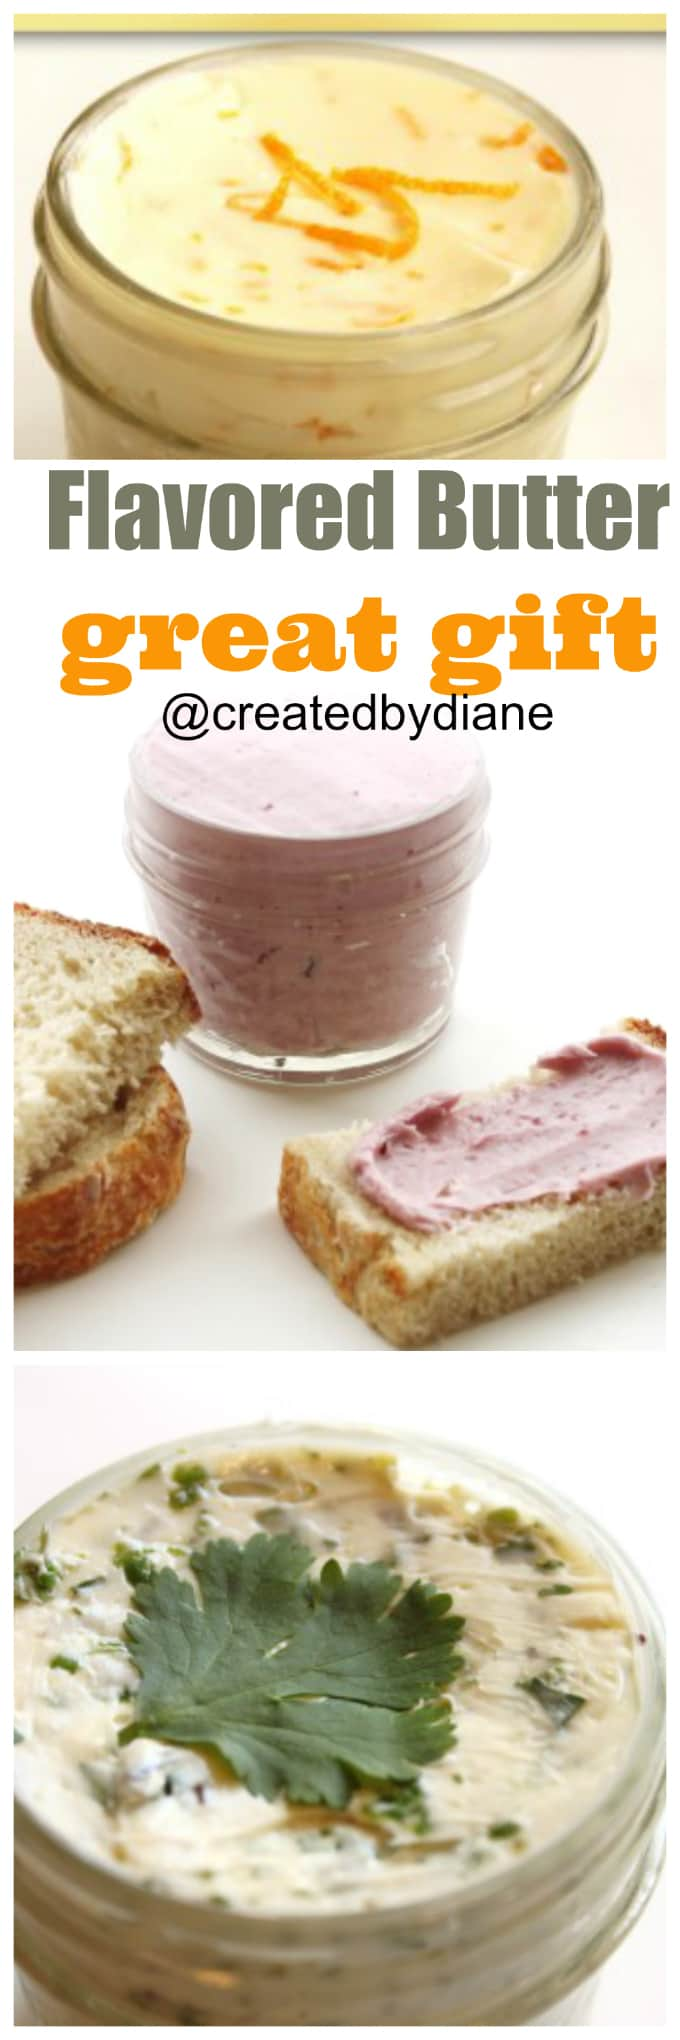 flavored-butter-recipes-createdbydiane